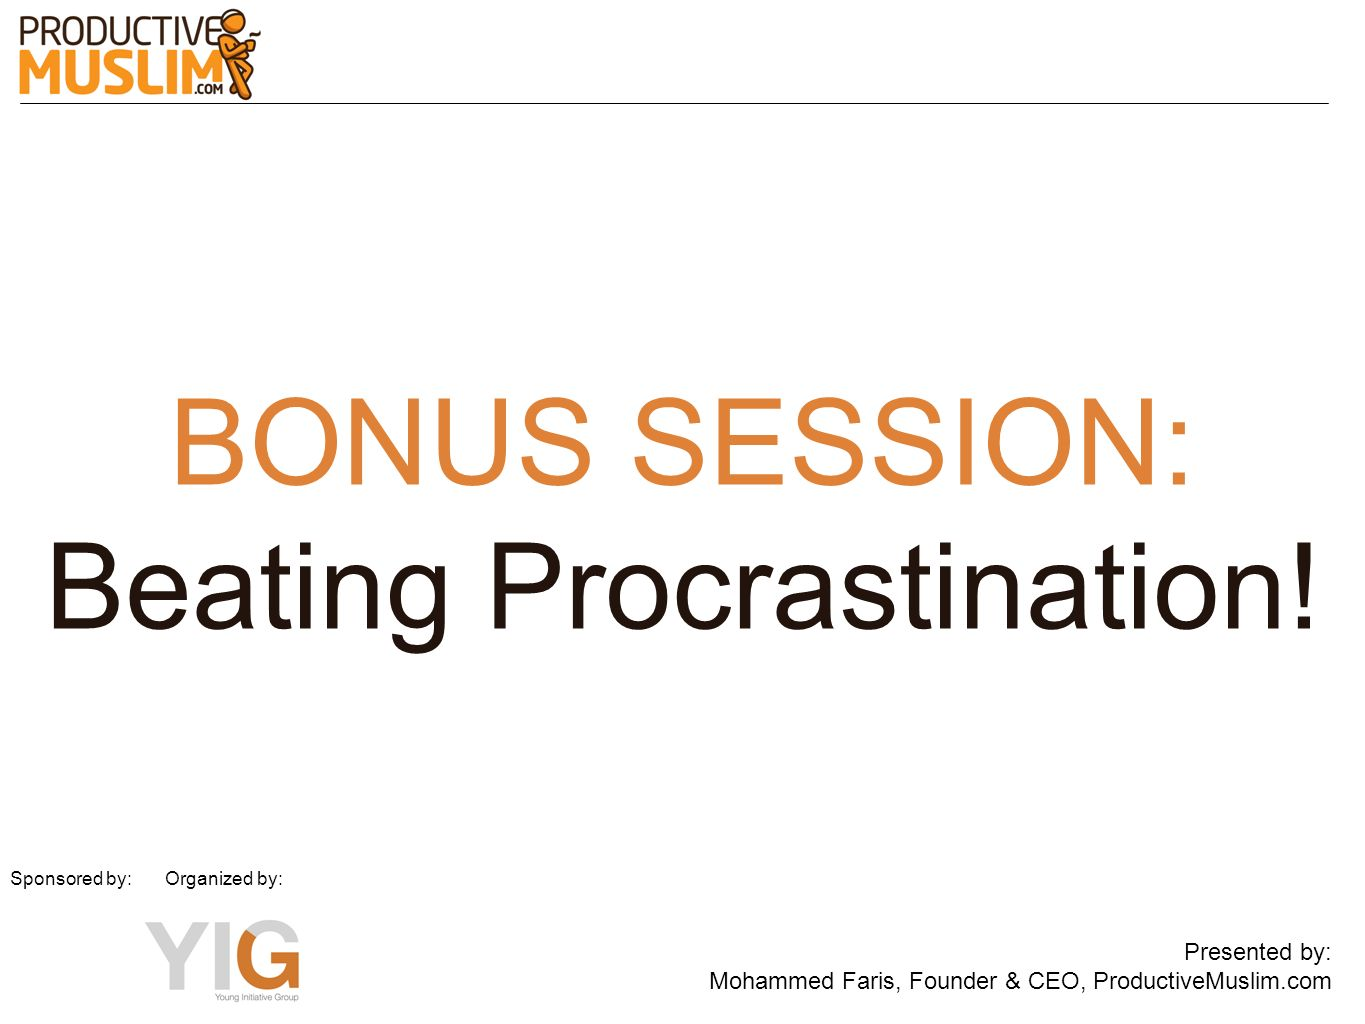 BONUS SESSION: Beating Procrastination! Presented by: Mohammed Faris, Founder & CEO, ProductiveMuslim.com Sponsored by: Organized by: